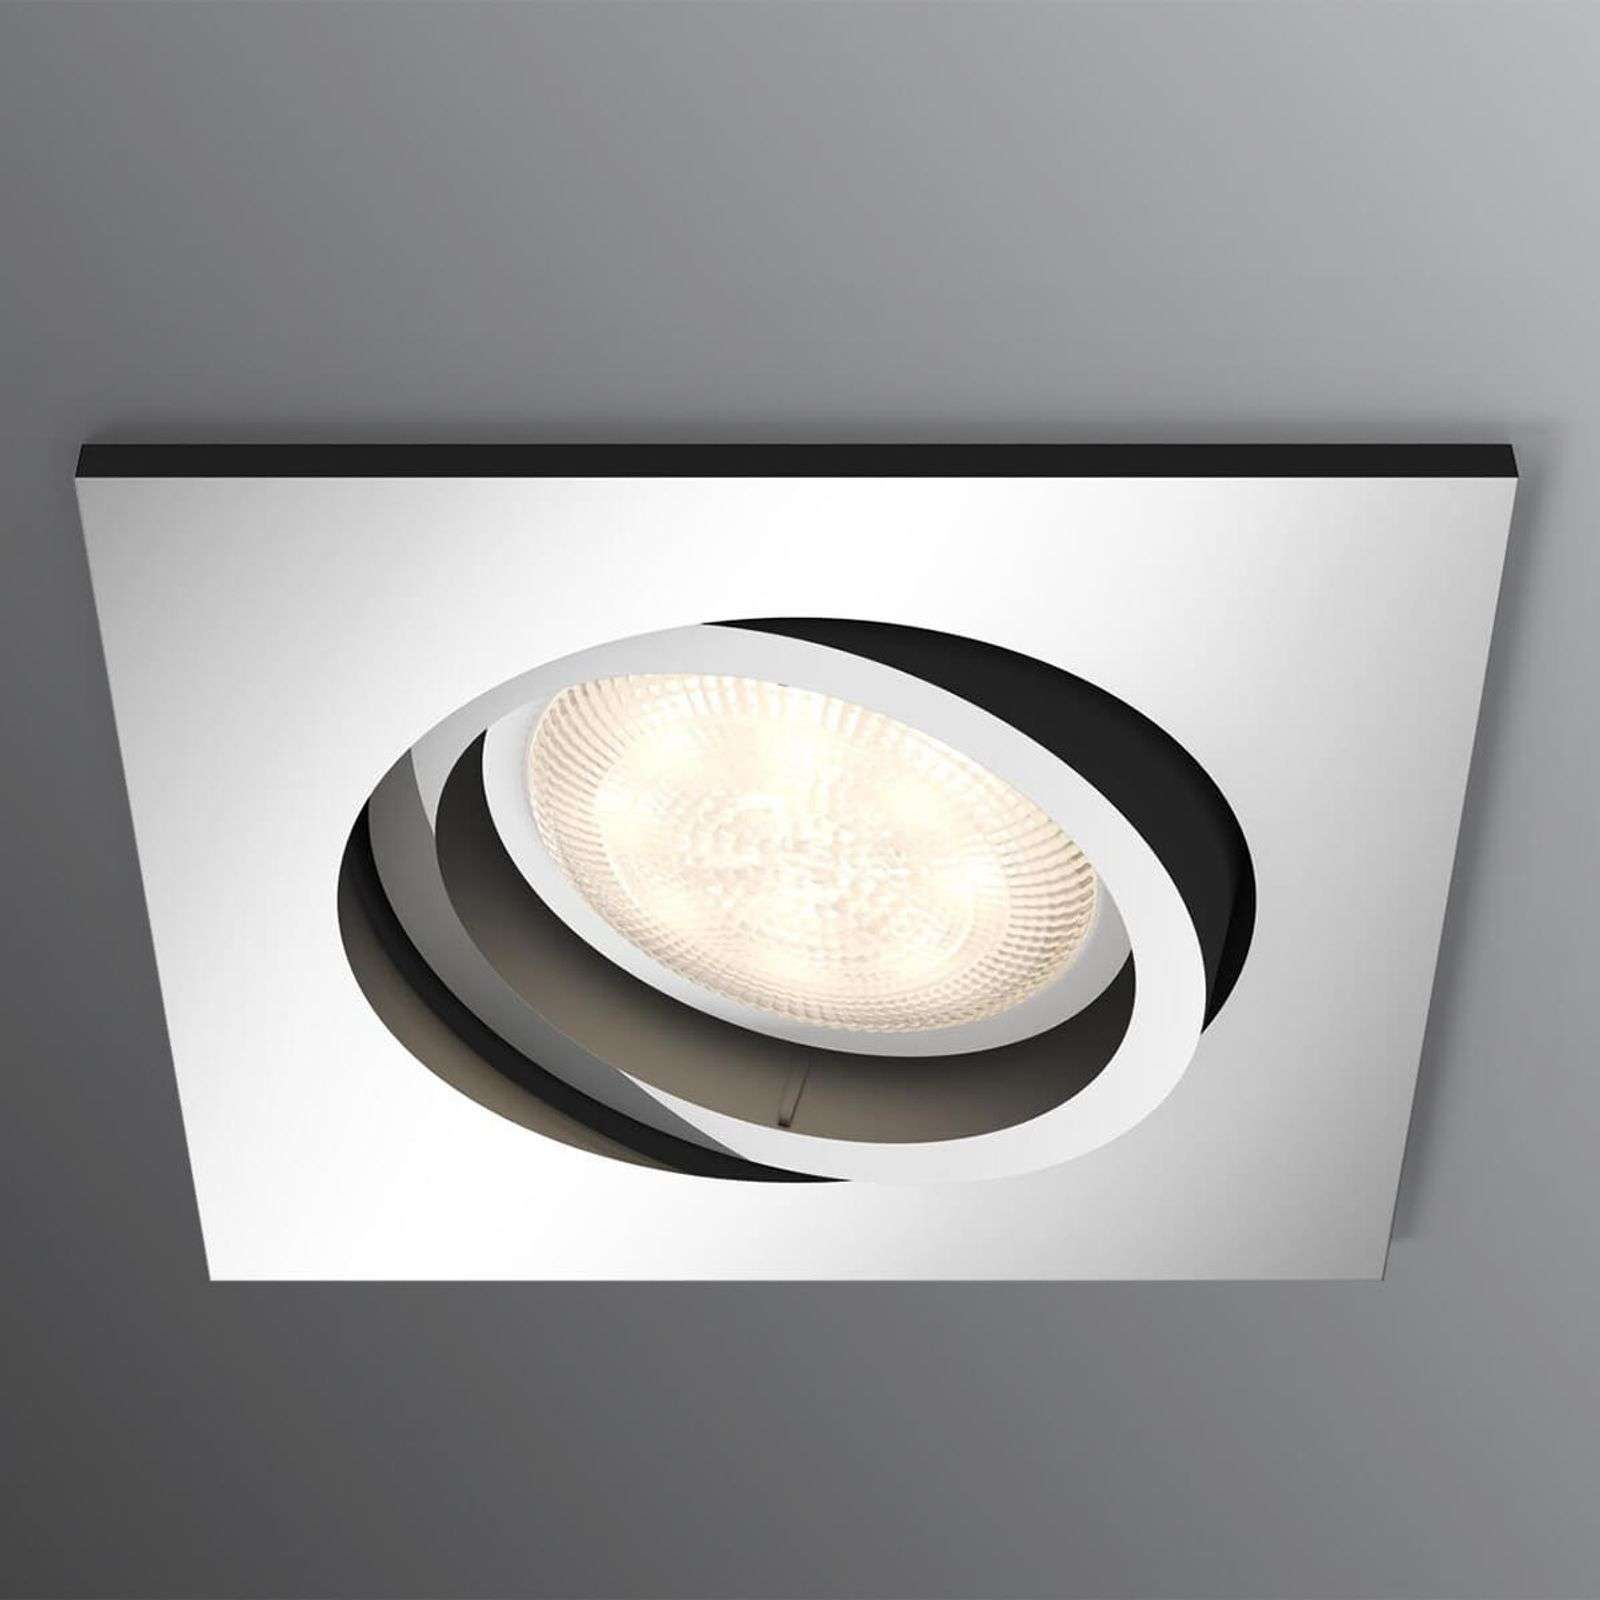 LED recessed spotlight Shellbark WarmGlow, chrome